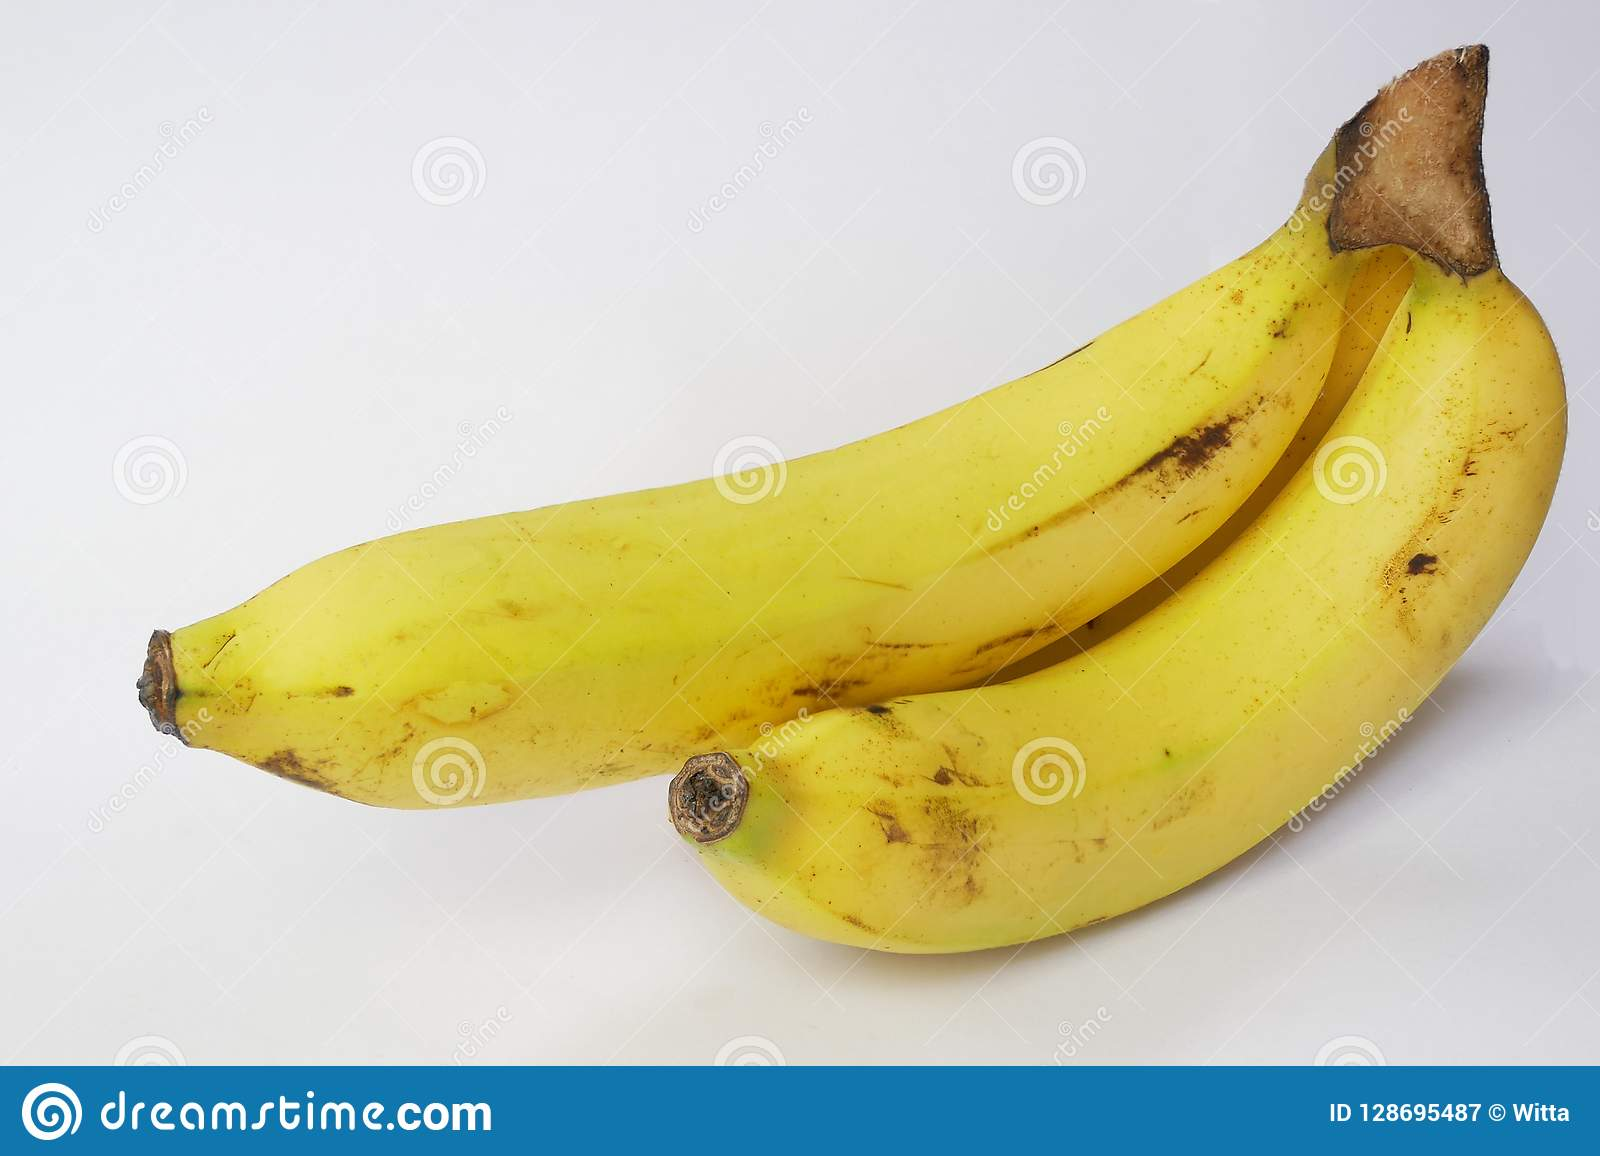 Banana isolated on white with clipping path and copy space